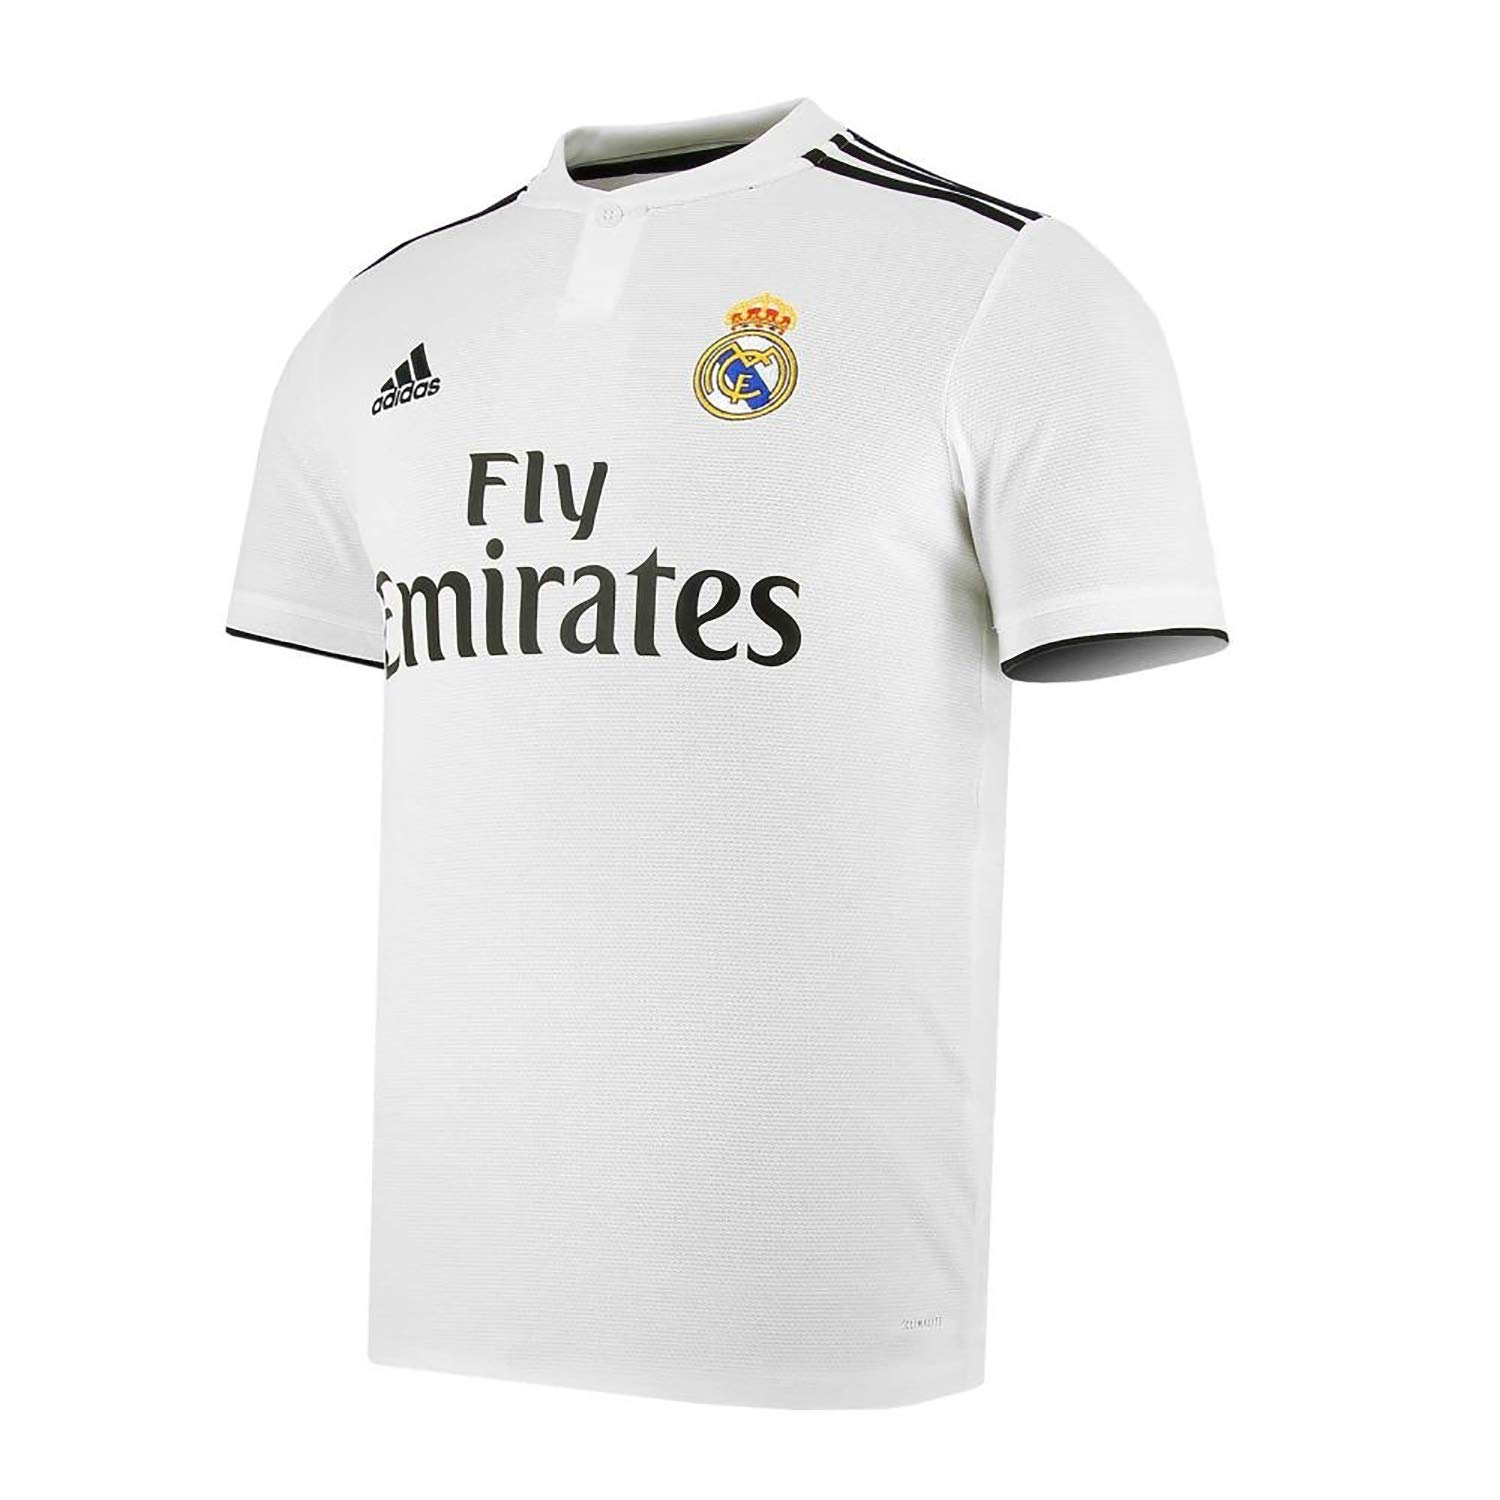 new style 67884 b6cea Adidas Jersey - Customizable - First Team Real Madrid ...